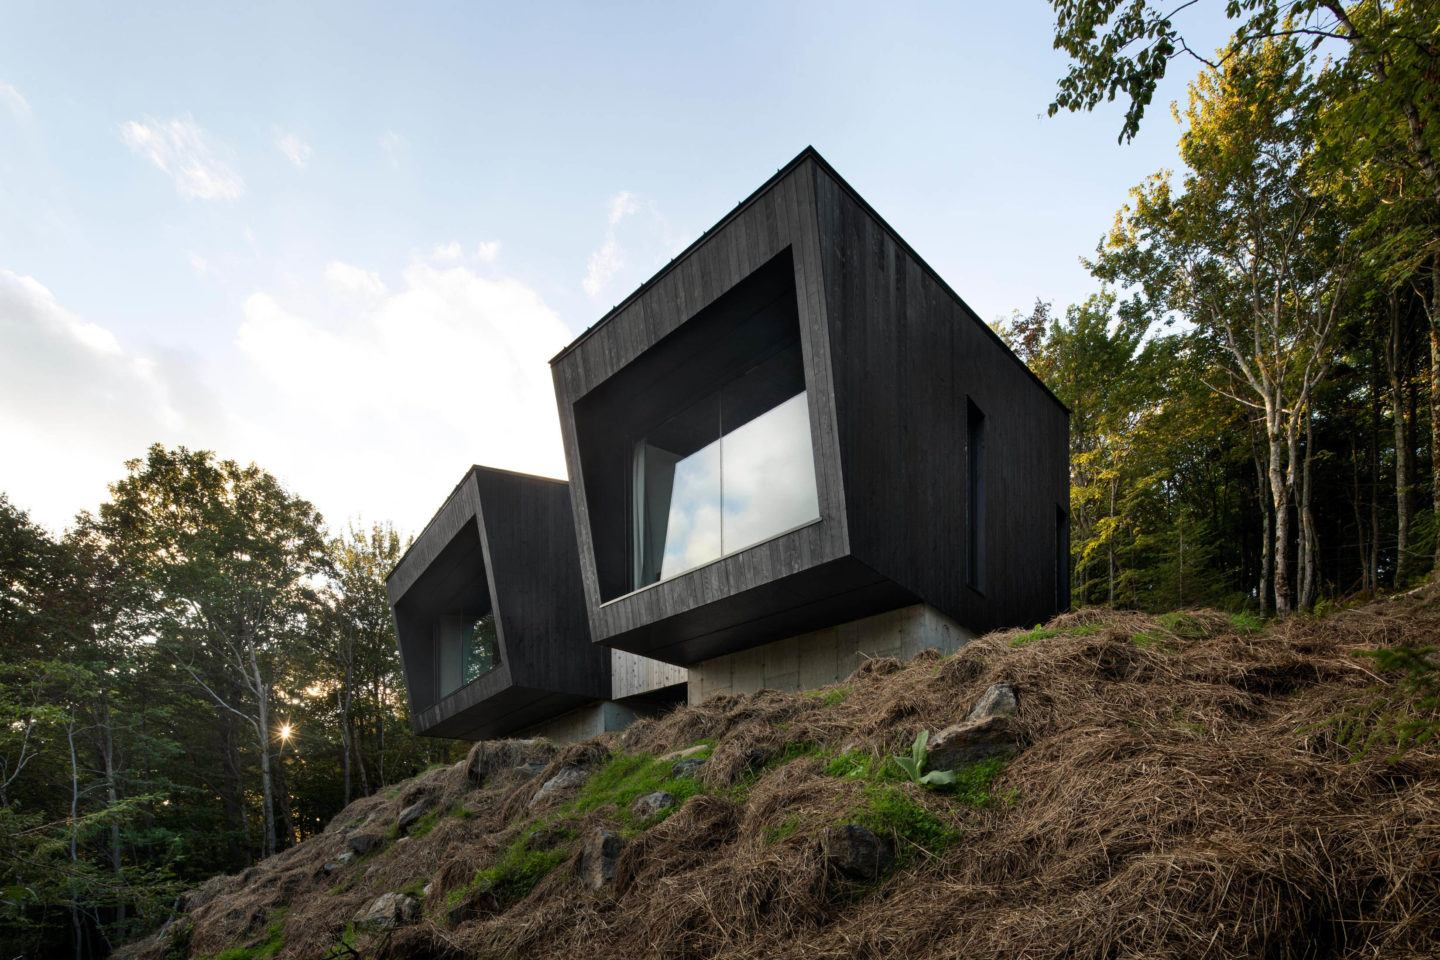 Naturehumaine Designs A Two-Part Cabin Built Of Burnt Wood In The Forests Of Quebec - IGNANT